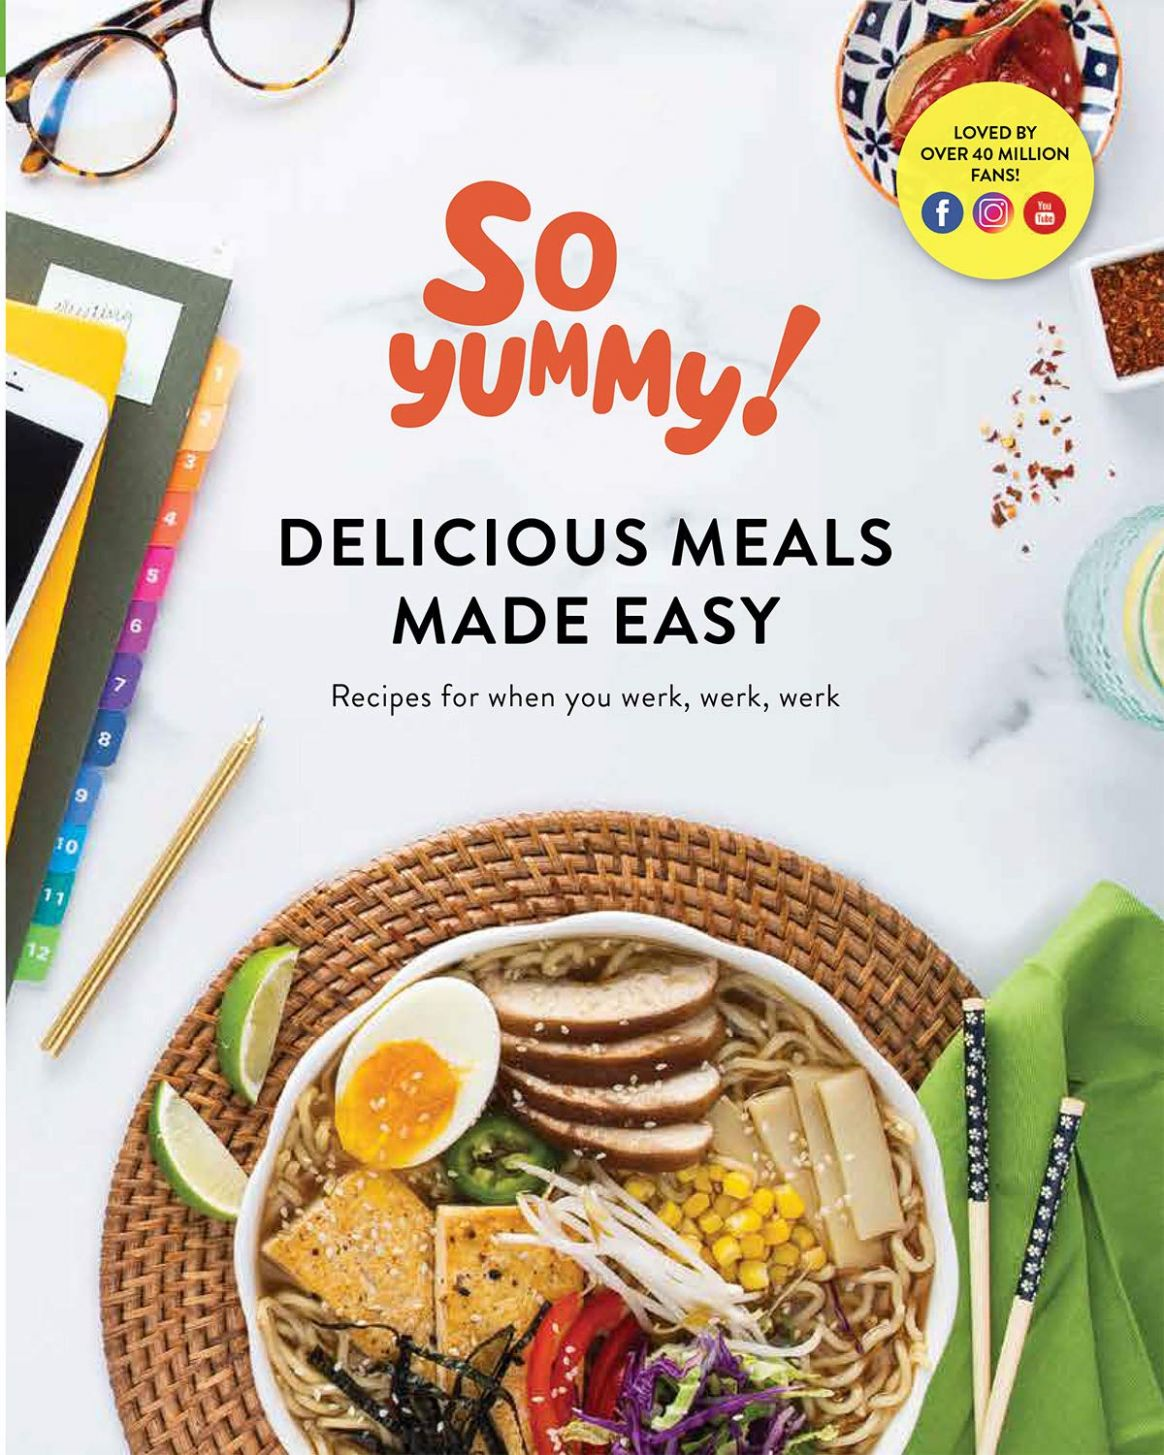 SO YUMMY DELICIOUS MEALS MADE EASY RECIPES FOR WHEN YOU WERK, WERK ..